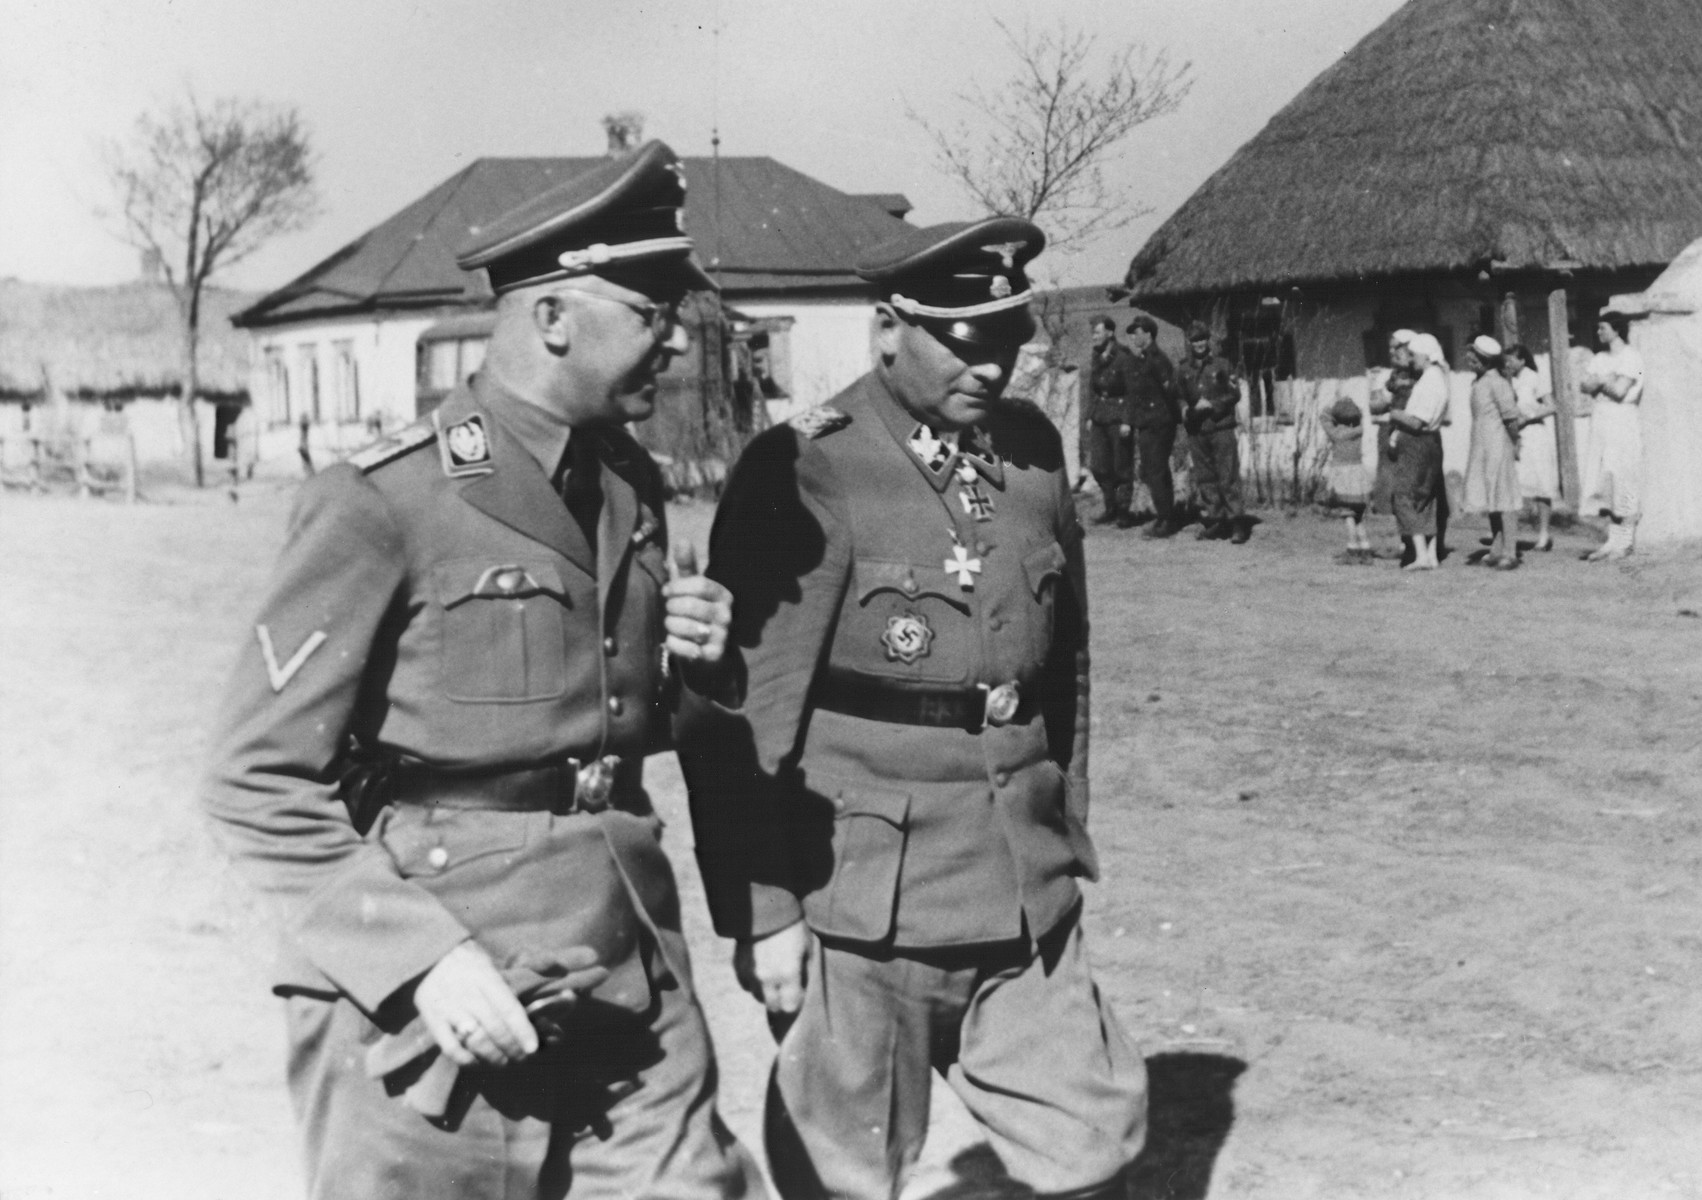 Reichsfuehrer-SS Heinrich Himmler (left) strolls through a village in the company of Waffen-SS Armored Division Wiking chief, SS-Brigadefuehrer and Major General Felix Steiner.  Steiner was commander of the Wiking Division from December 1940 through May 1943. Himmler may have visited the Wiking Division during his visits to Waffen-SS and Einsatzgruppe D units in Kriwoj Rog and Nikoljew on October 3-5, 1941.  During this tour, Himmler ordered that gas vans be deployed to Nowgorod to kill the mentally ill.  In conjunction with Himmler's visit, a teilkommando of Einsatzgruppe D shot Jewish women for the first time. [Himmler Dienstkalender, pp.224-25]